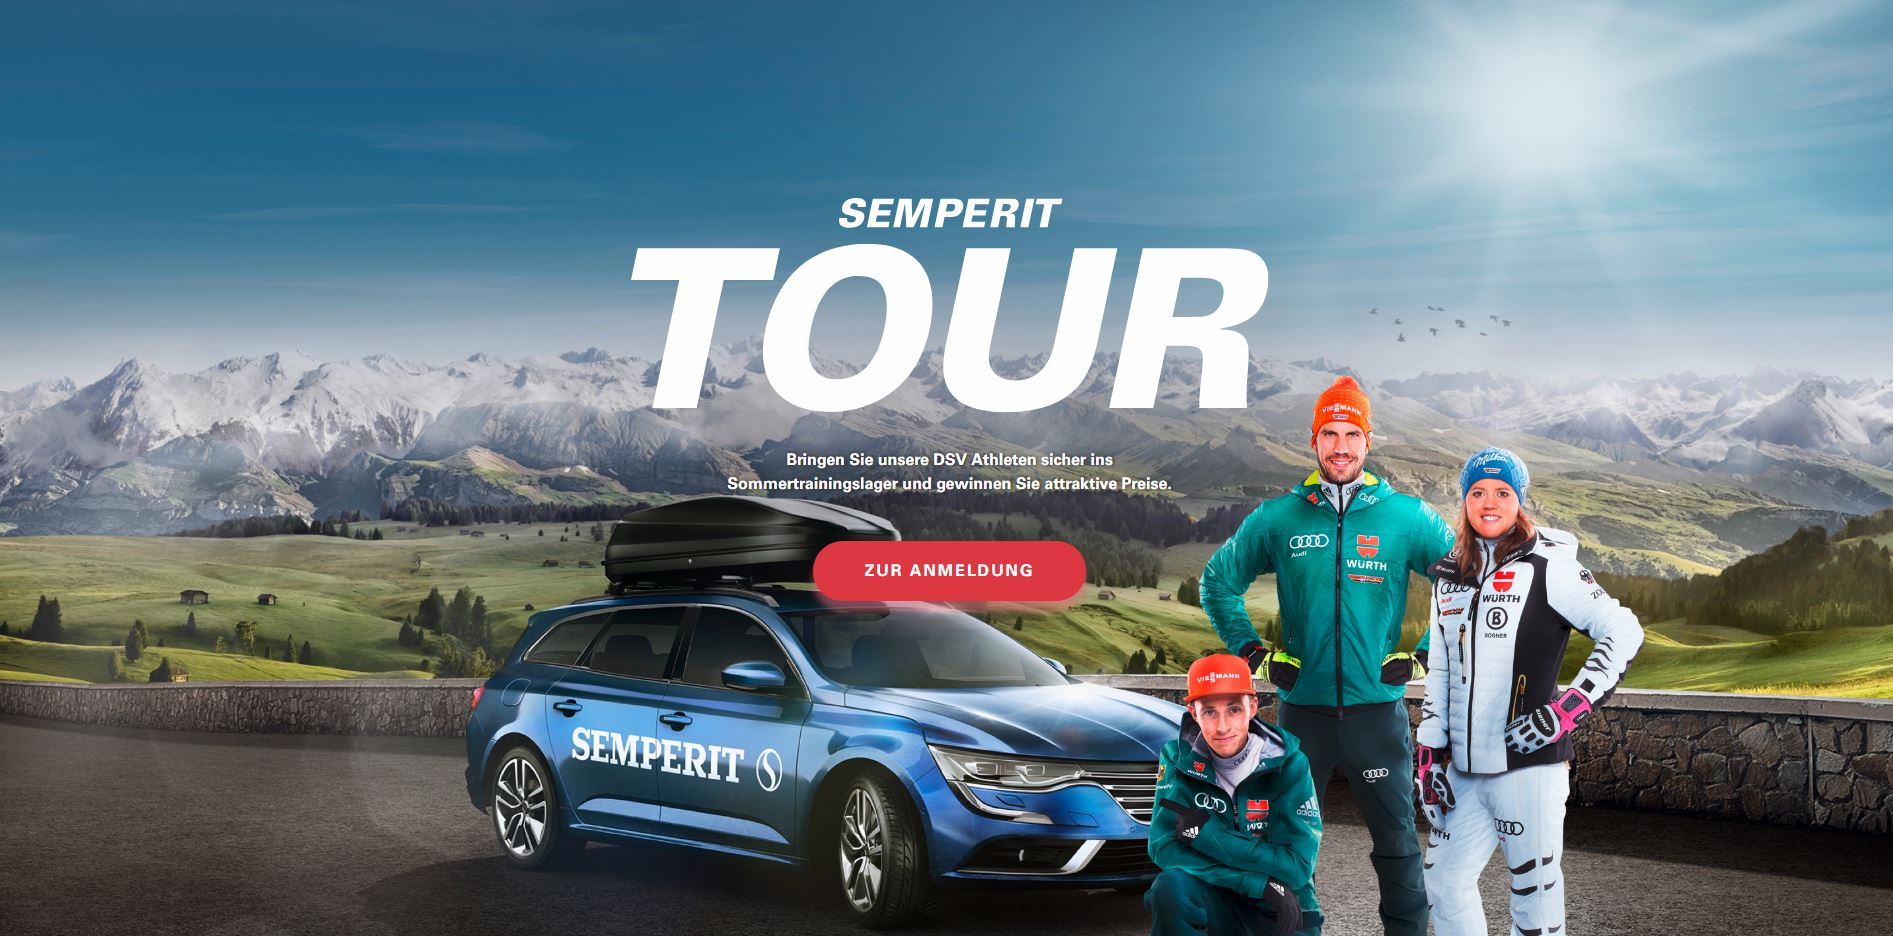 Semperit Tour 2018